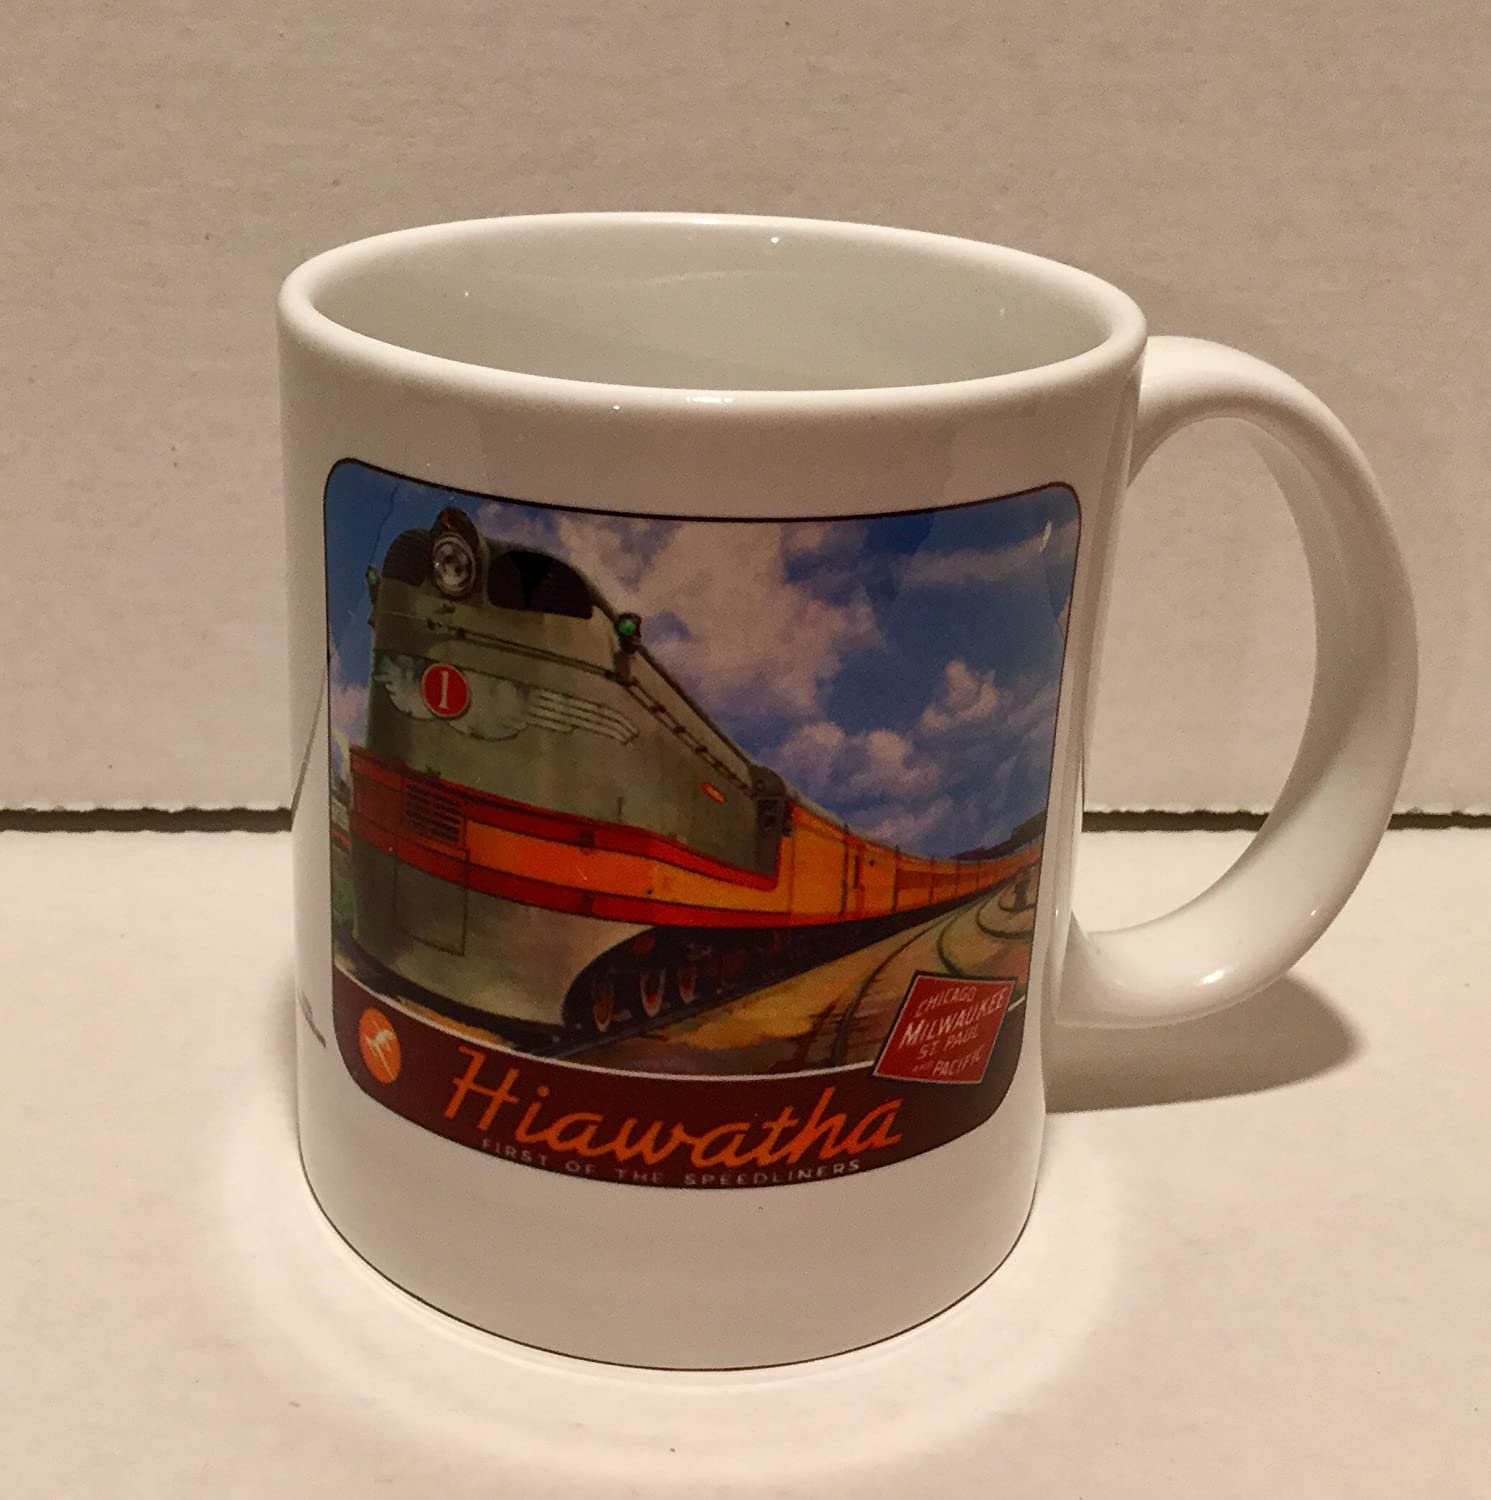 Mug Railroad Coffee Coffee Mug Milwaukee Railroad Milwaukee Coffee Milwaukee Mug 6yYb7gf